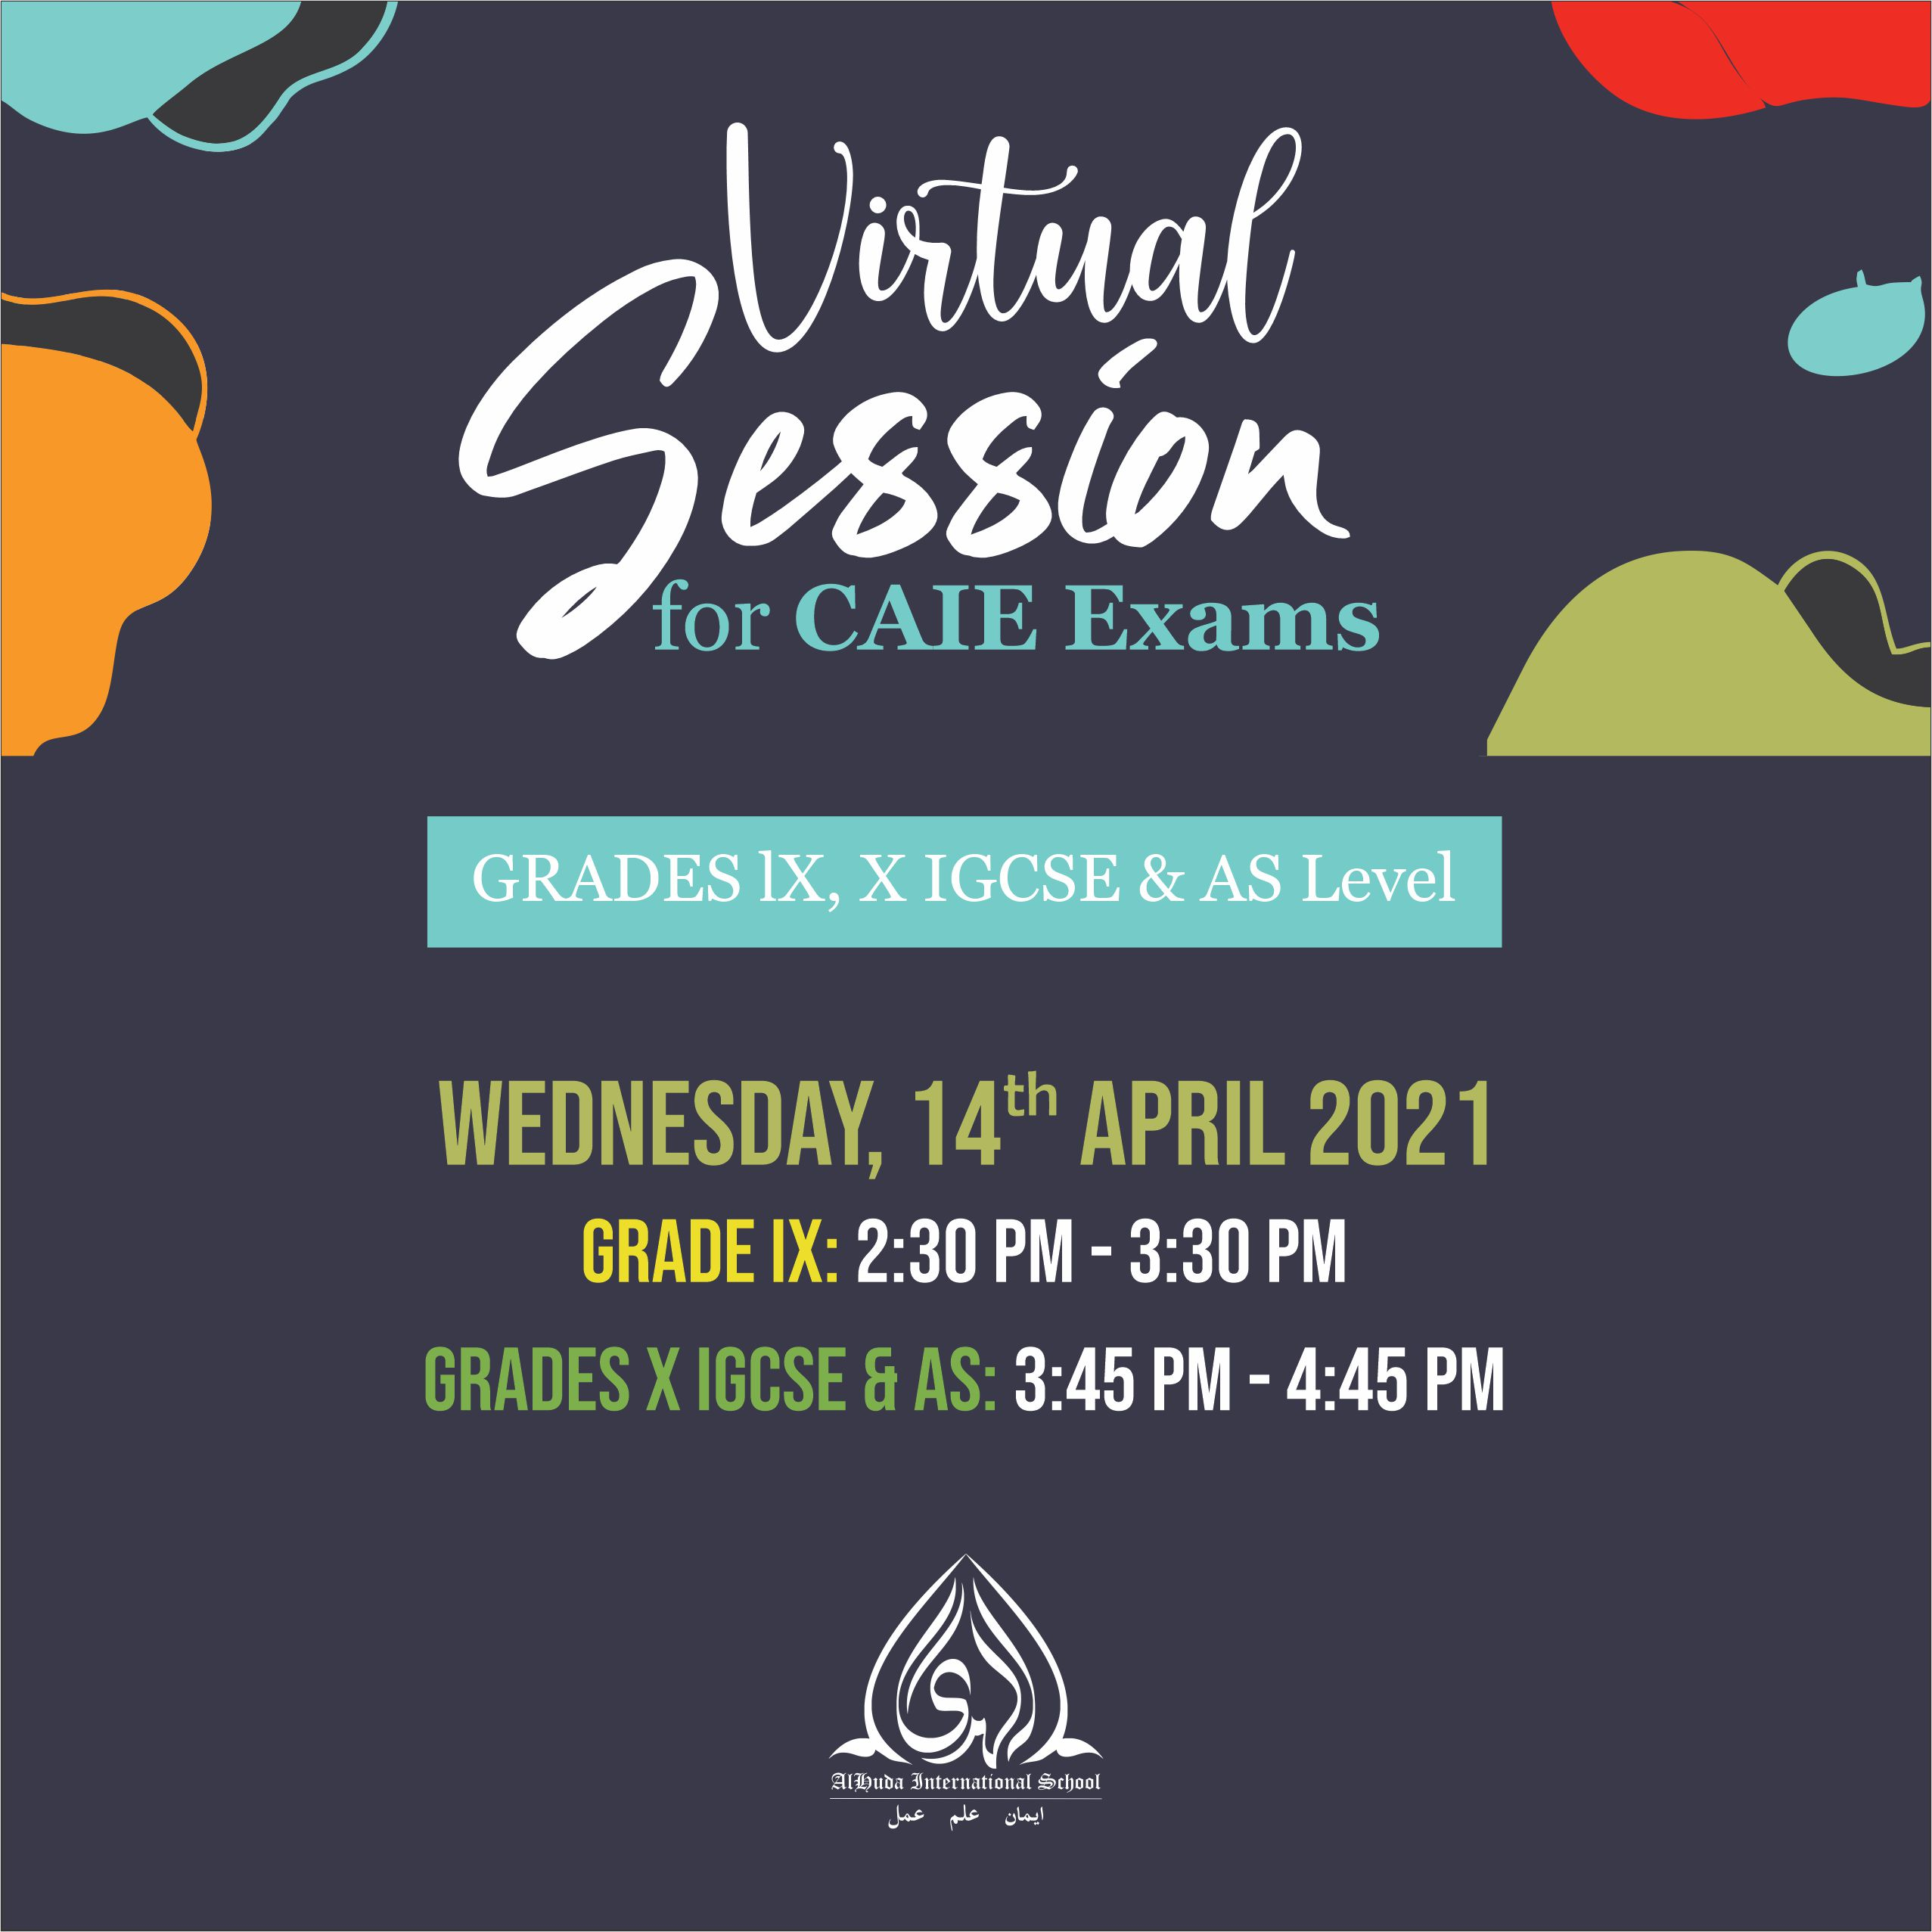 Virtual-Session-for-CAIE-Exams.jpg